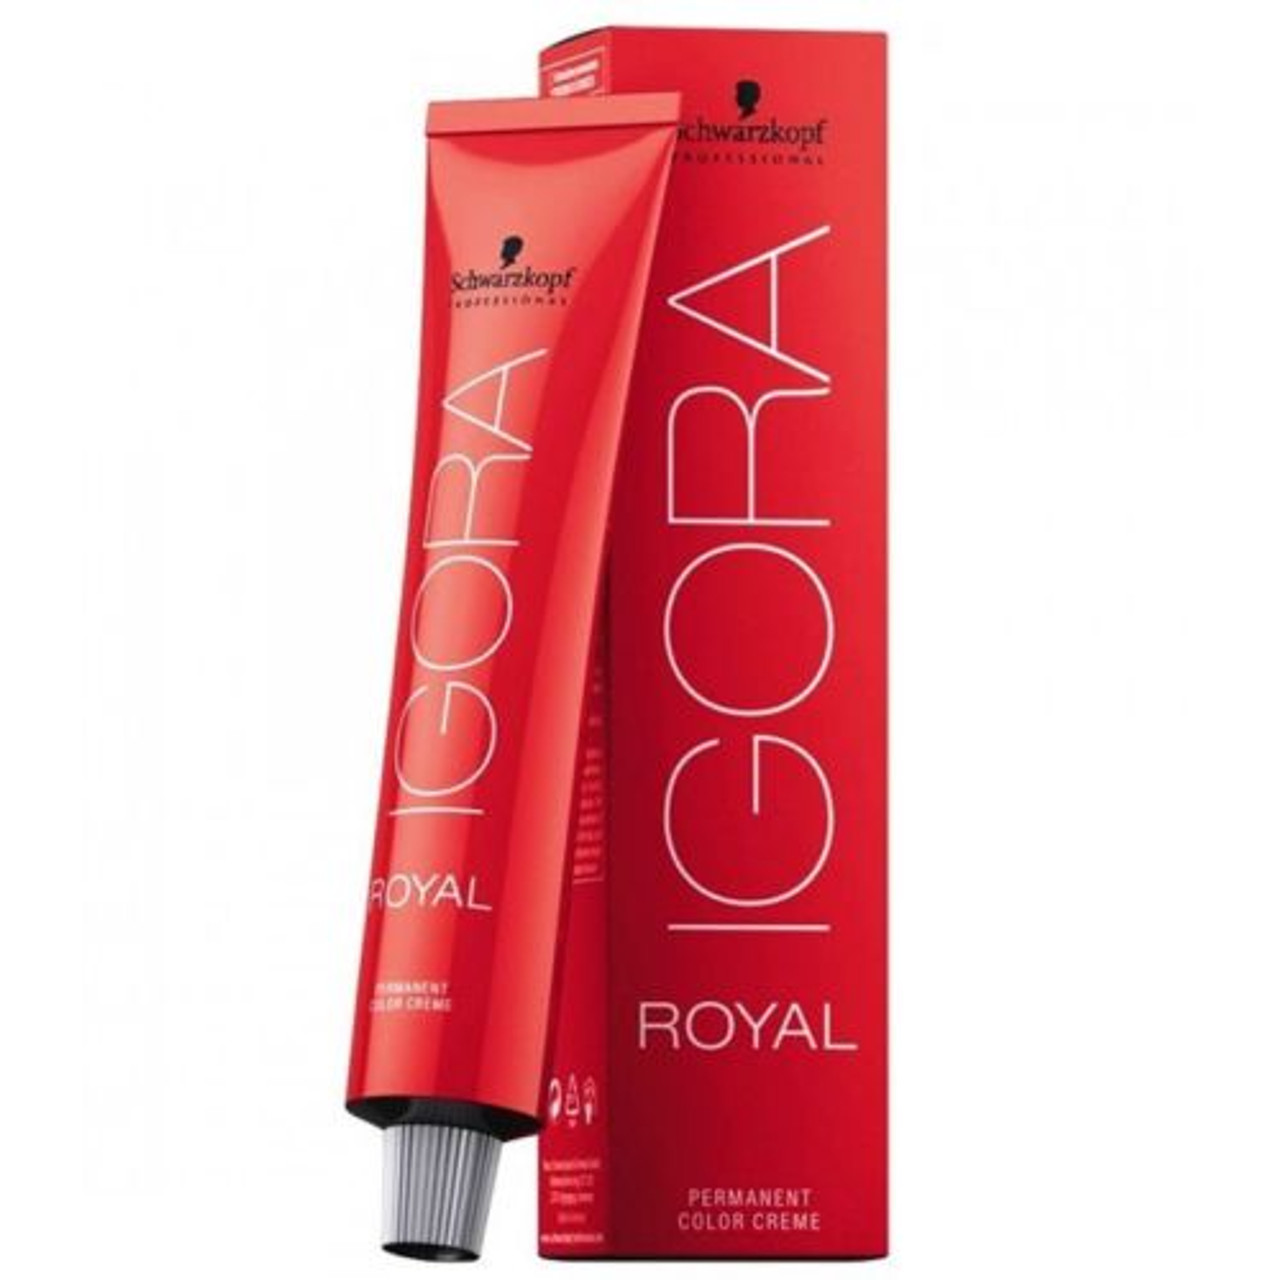 Schwarzkopf Igora Royal Permanent Color Creme - 6-5 Dark Golden Brown